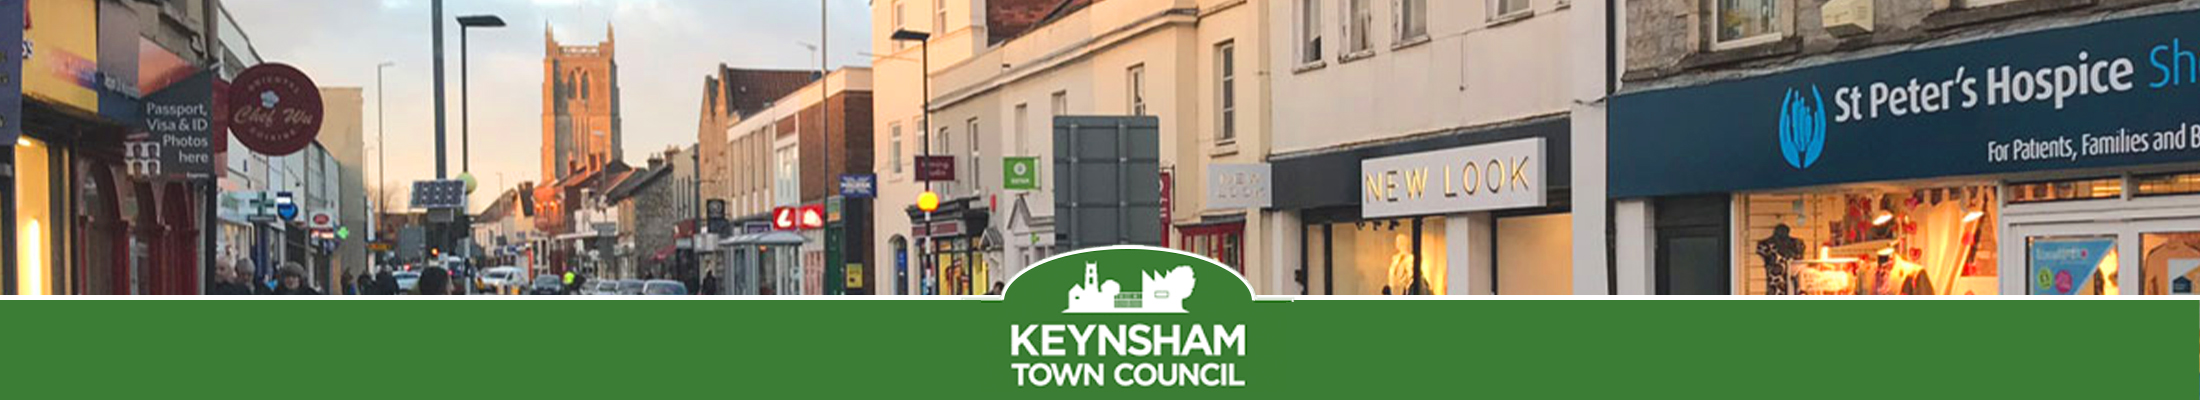 Header Image for Keynsham Town Council